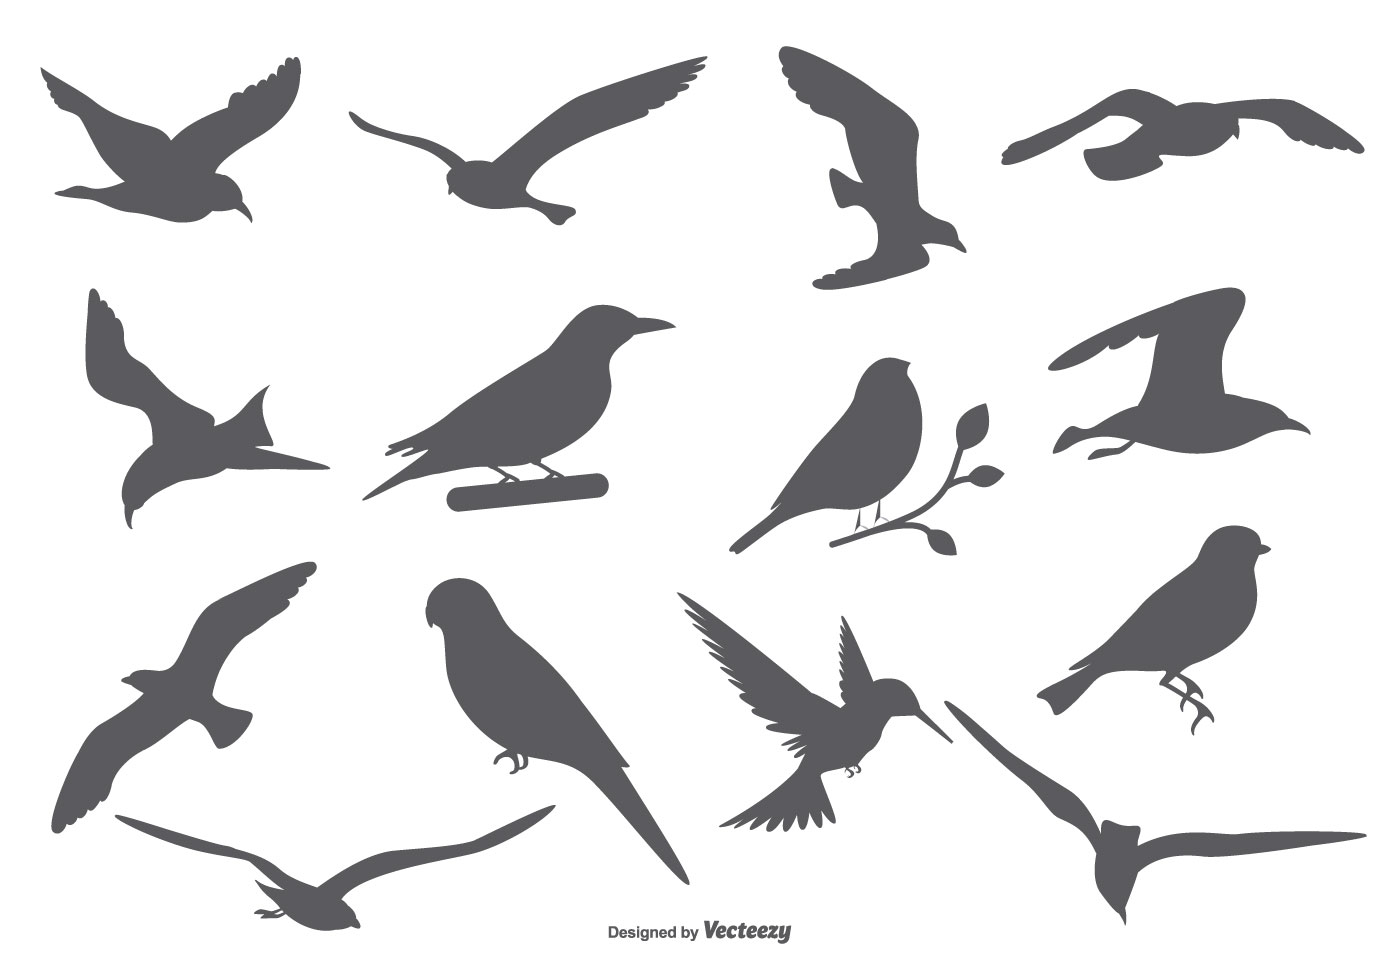 Bird Vector Silhouettes - Download Free Vector Art, Stock Graphics & Images